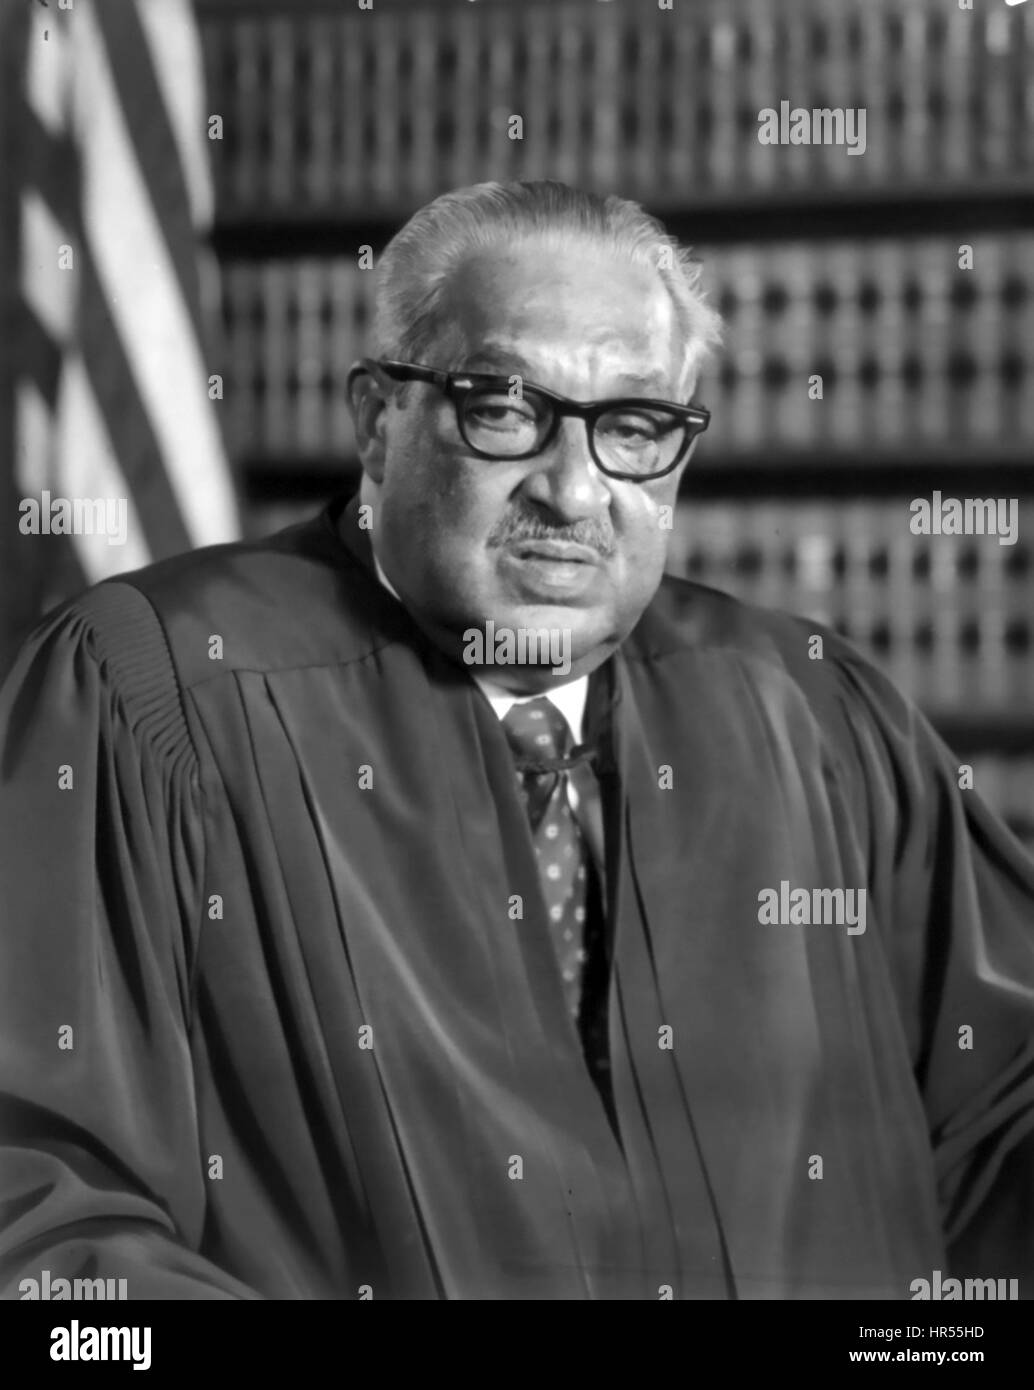 THURGOOD MARSHALL (1908-1993) as an  Associate Justice  of the US Supreme Court in 1976 - Stock Image